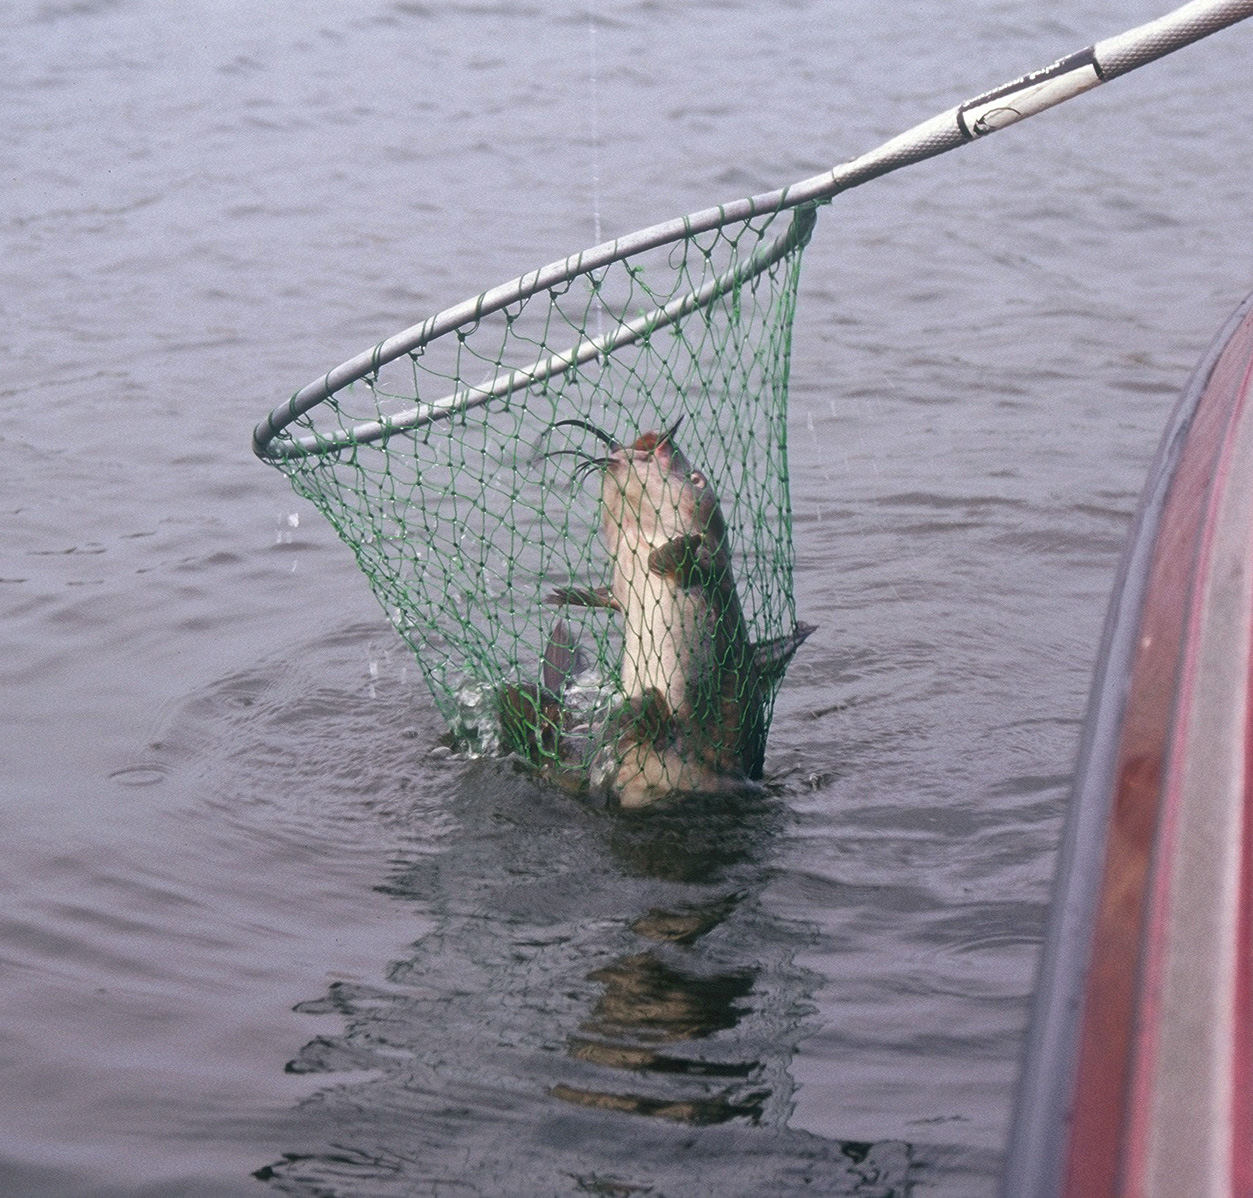 Illinois randolph county baldwin - To Catfish Anglers Baldwin Lake Offers Some Prime Water A Cooling Lake For The Power Plant The Lake Provides An Active Growing Season All Year